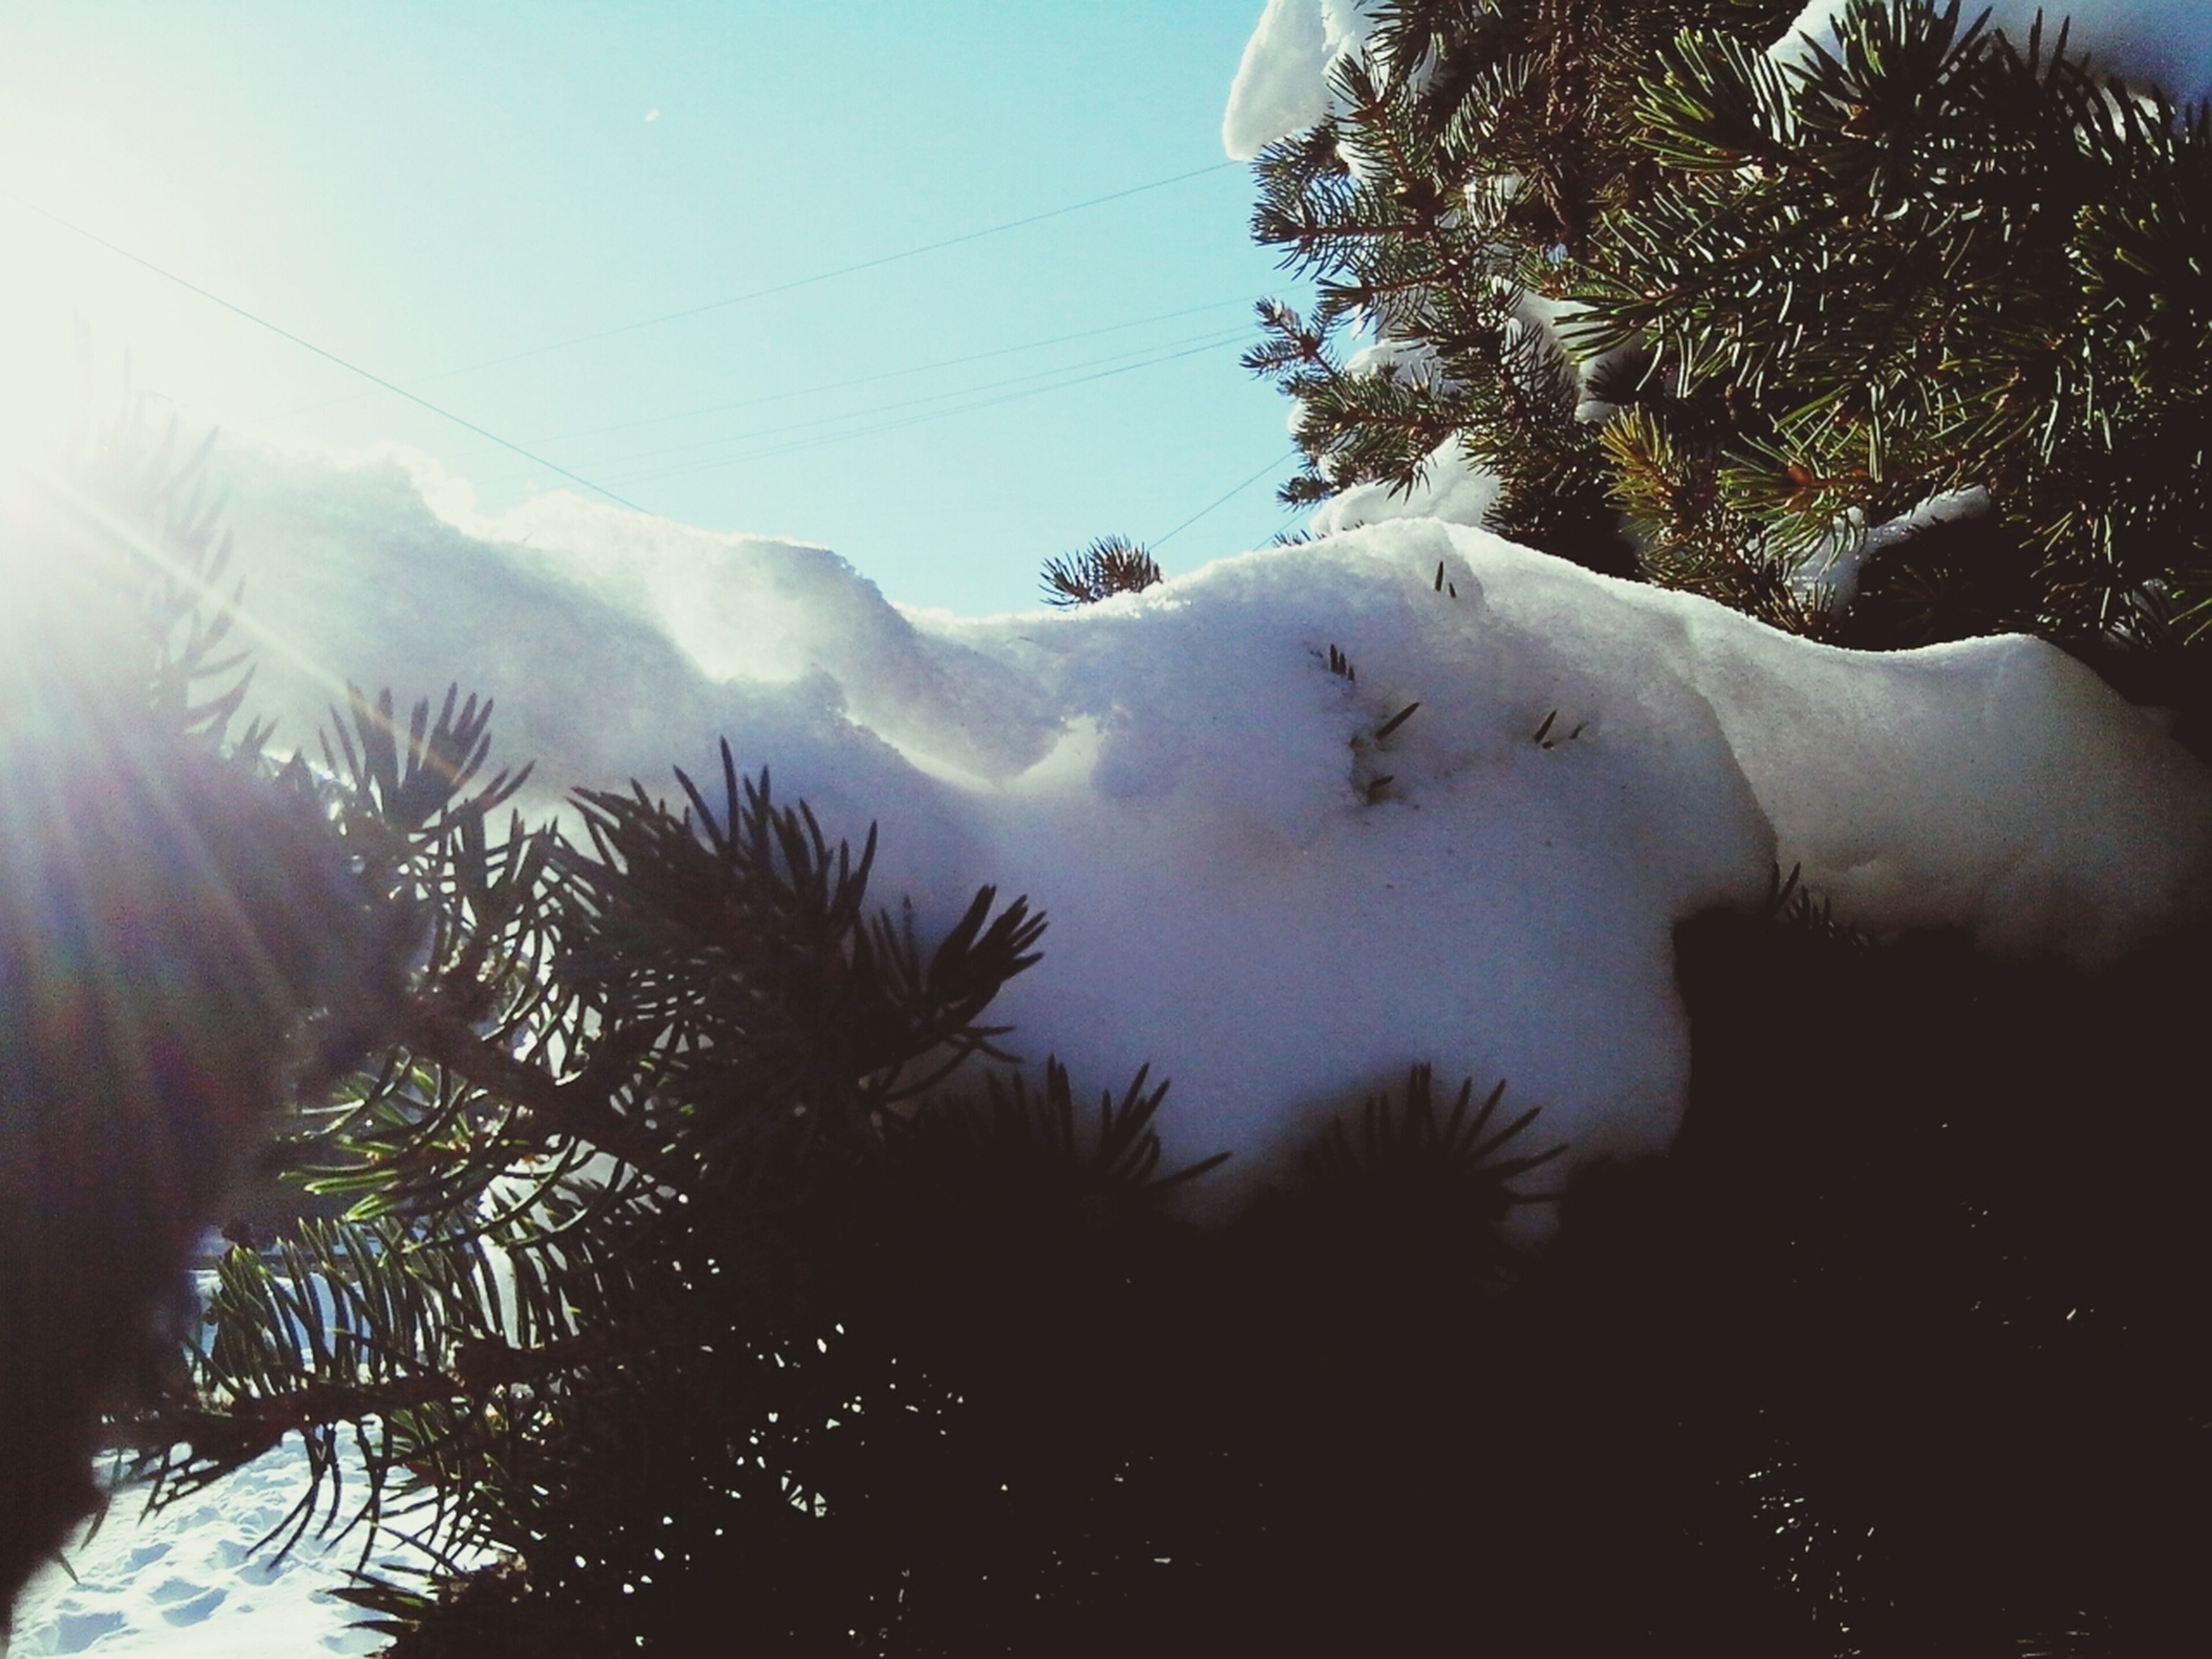 tree, mountain, sky, tranquility, lifestyles, leisure activity, men, nature, tranquil scene, beauty in nature, scenics, clear sky, palm tree, sunlight, silhouette, low angle view, day, unrecognizable person